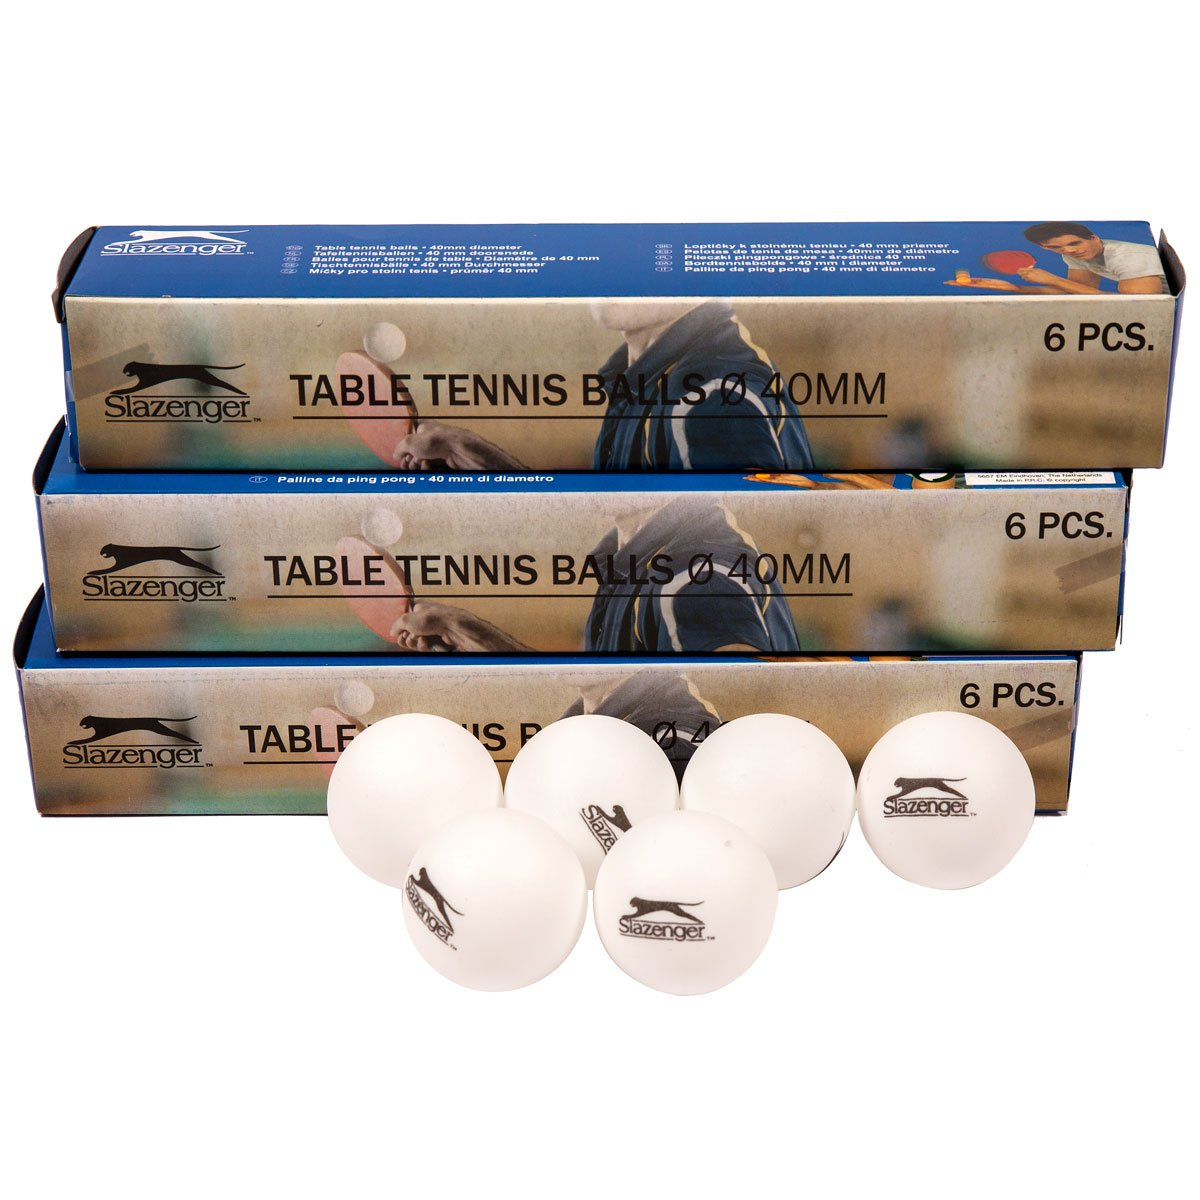 Slazenger Lot DE 24 balles de Tennis de Table Ping Pong Plastique Blanc uni Sports Ballon d'entraînement avec Logo 40 mm de diamètre – Lot DE 24